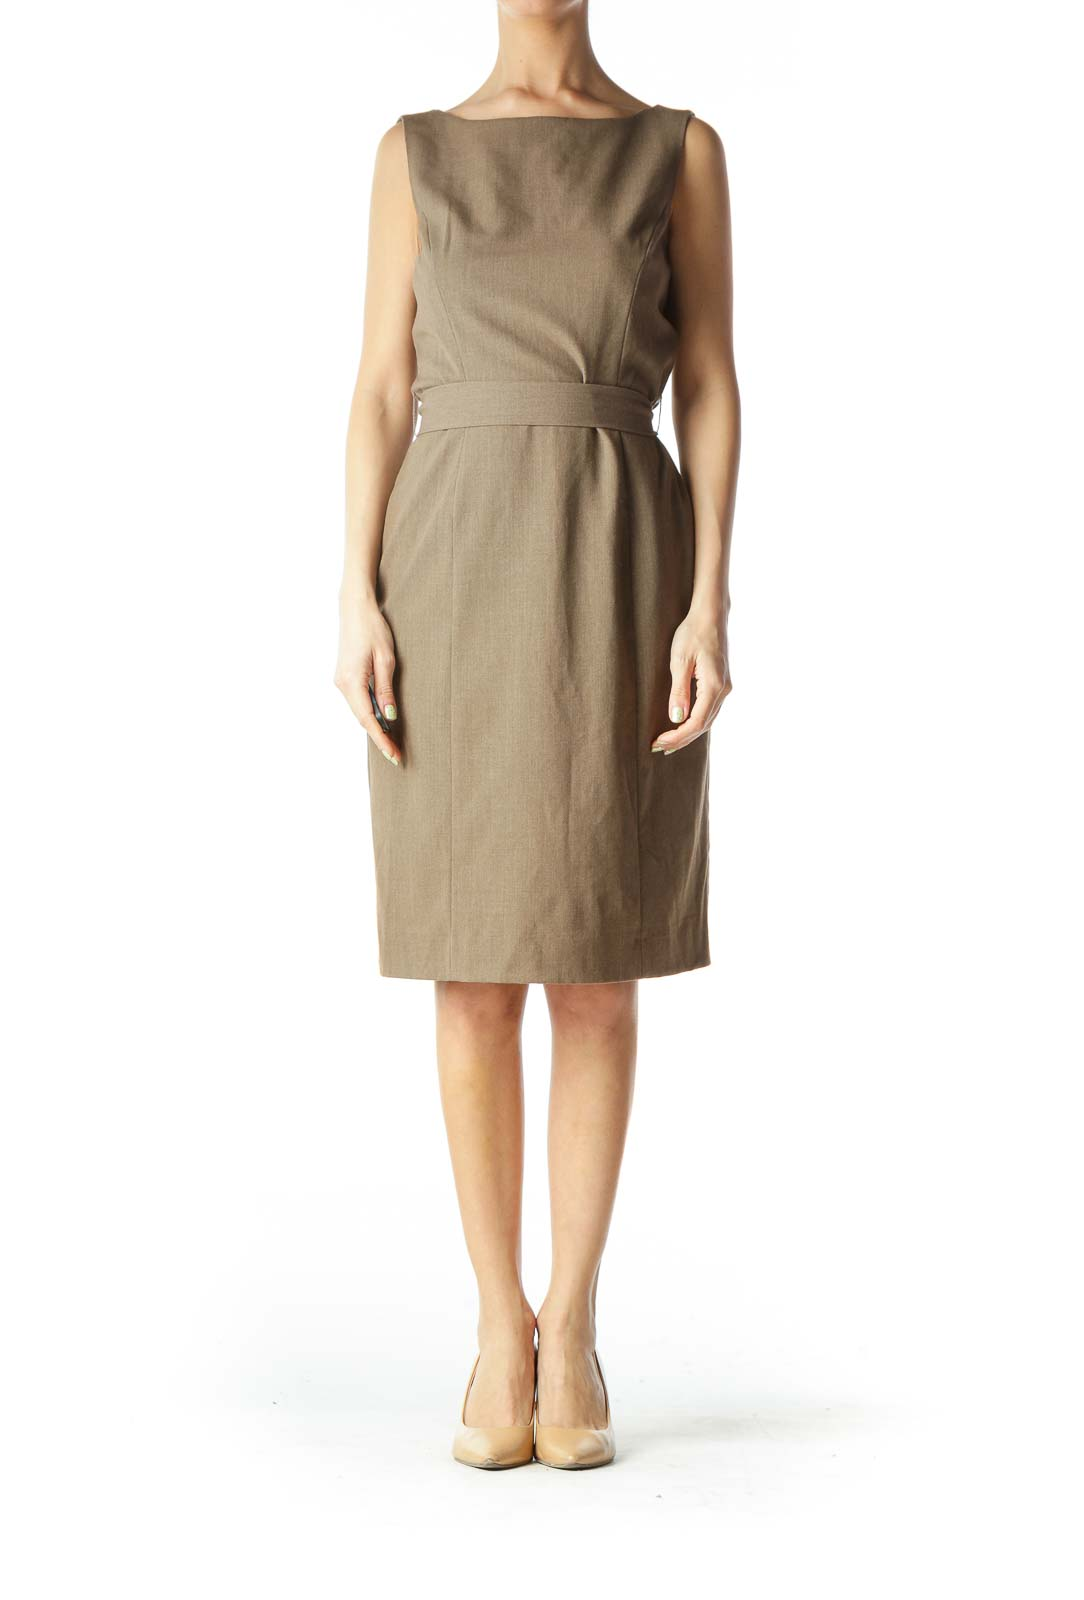 Brown Back-Tie Shift-Neck Structured Work Dress